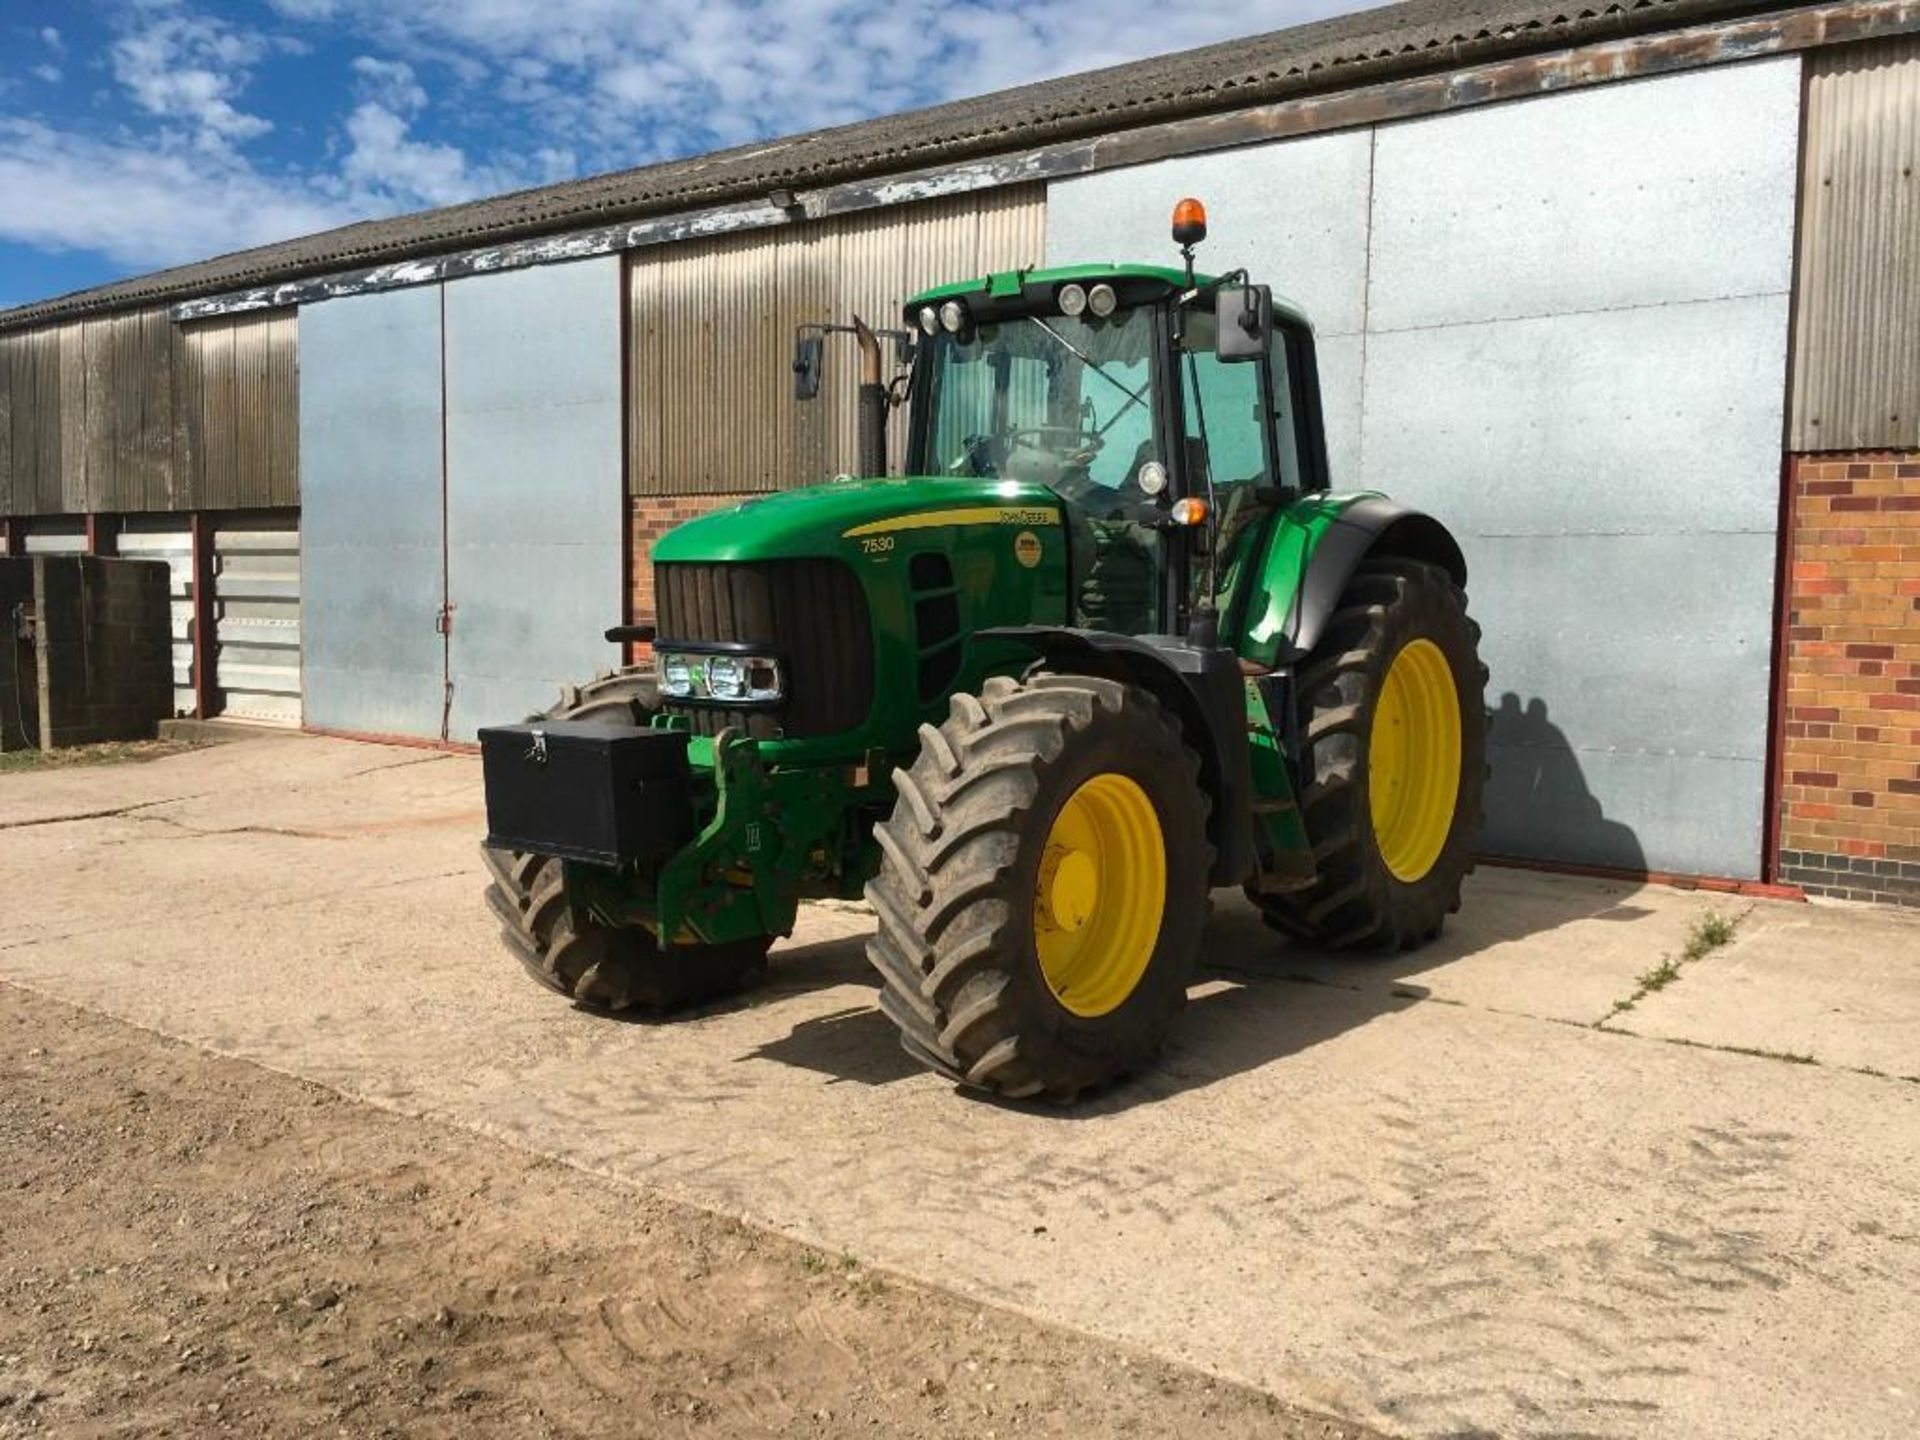 2008 John Deere 7530 tractor with auto quad gear box, 4 spool valves, pick up hitch, air seat, front - Image 2 of 14